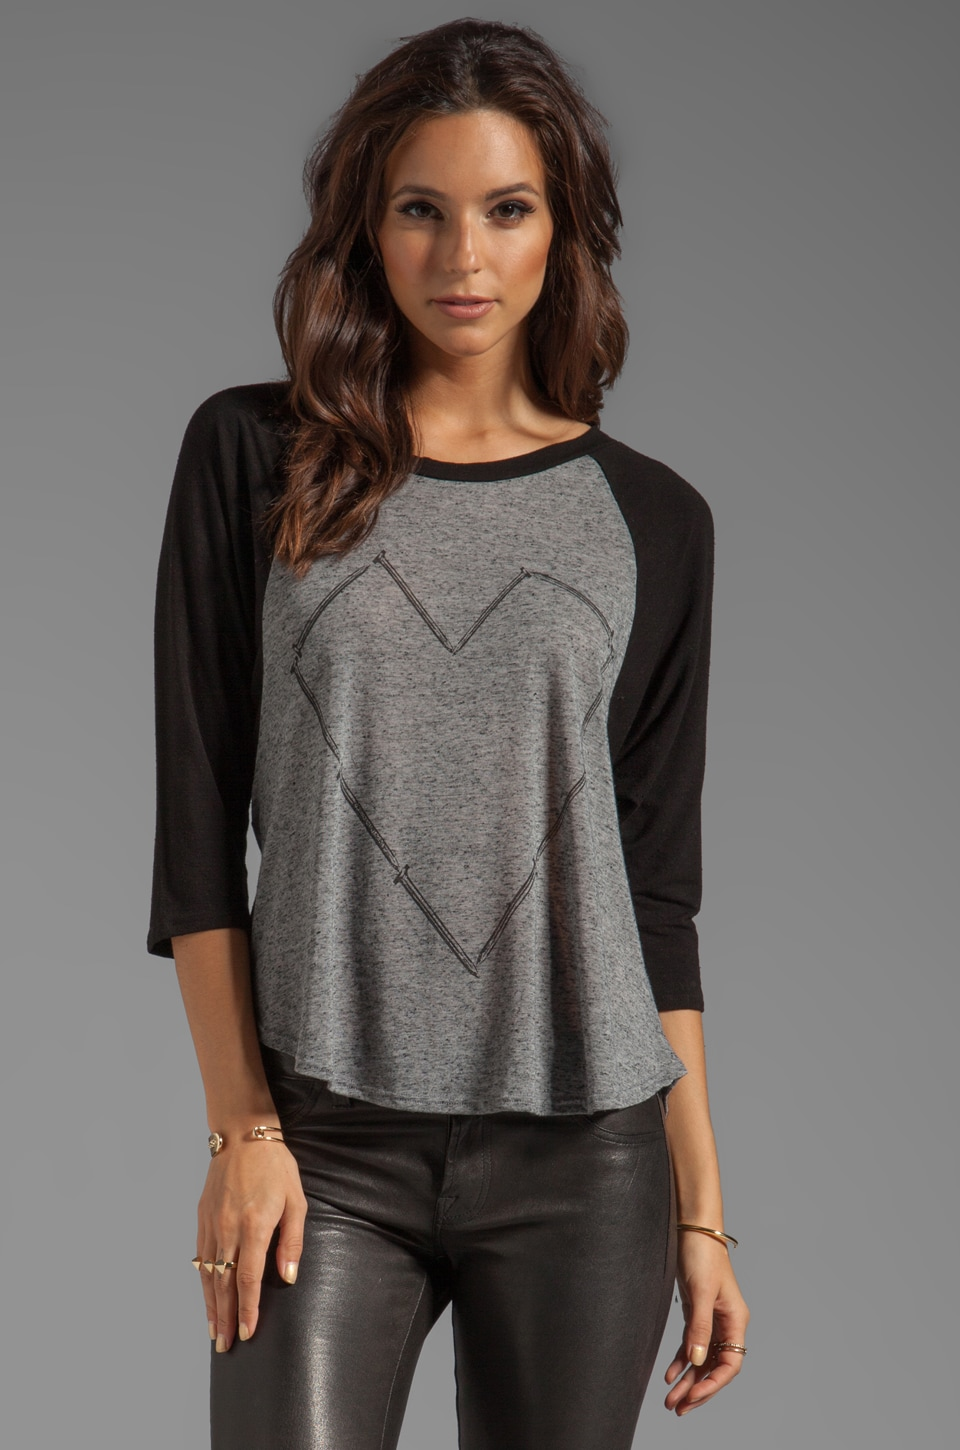 Lauren Moshi Drew Large Nail Heart Draped Sleeve Raglan Top in Black